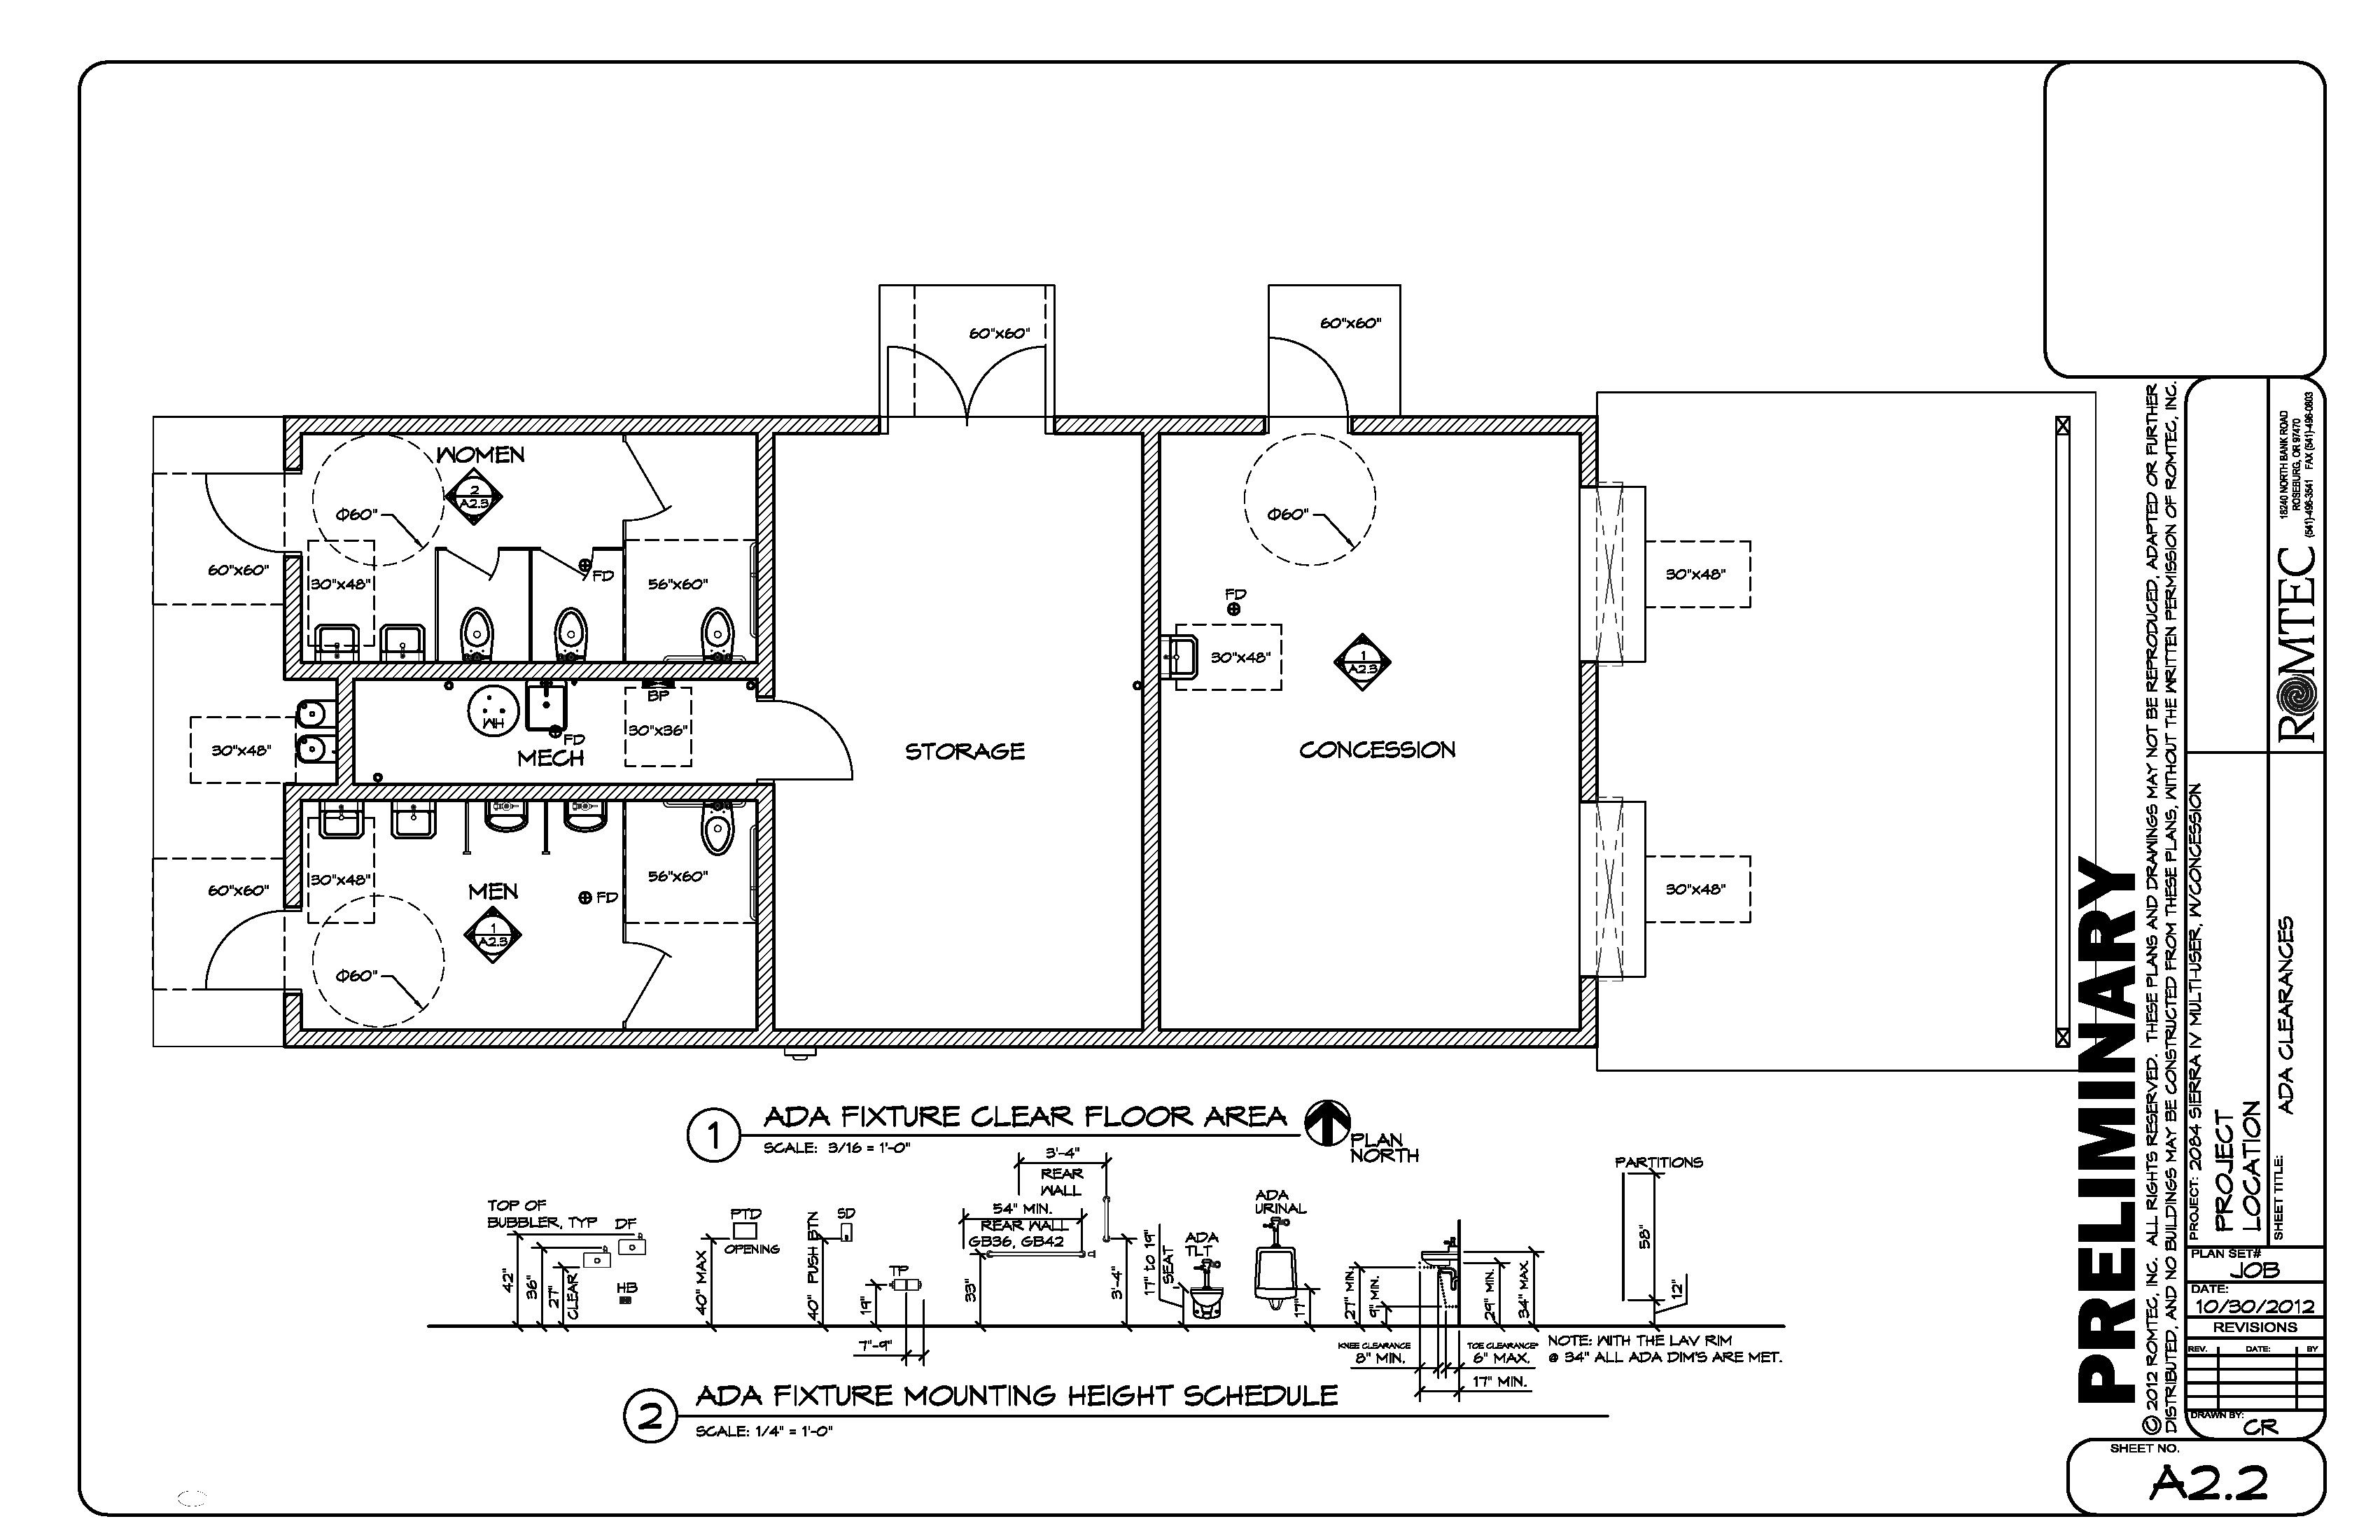 Construction Bathroom Plans a romtec floor plan with ada specifications | apartment design